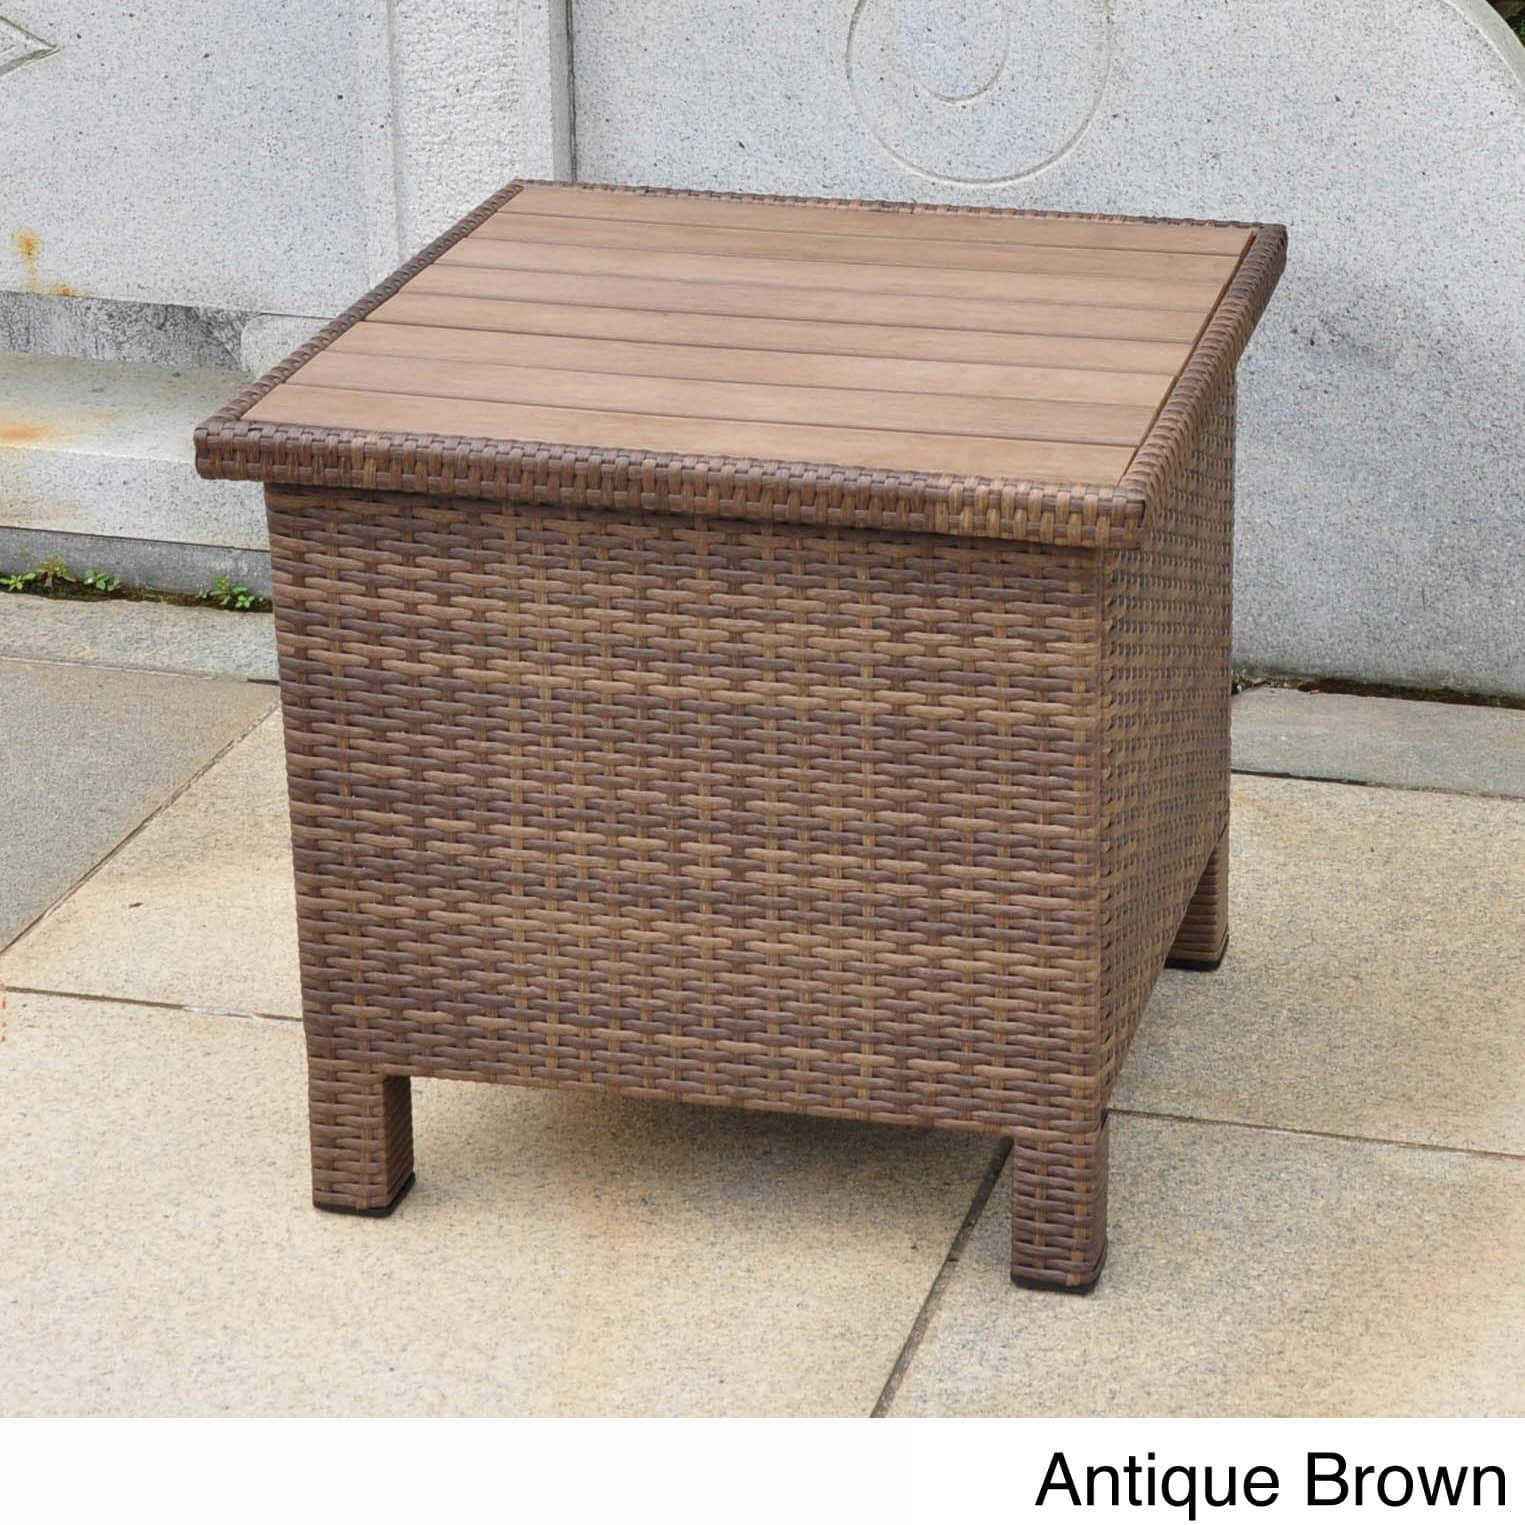 international caravan barcelona contemporary resin wicker aluminum outdoor storage side table with ashley nesting tables safavieh glass coffee dinette sets white furniture purple